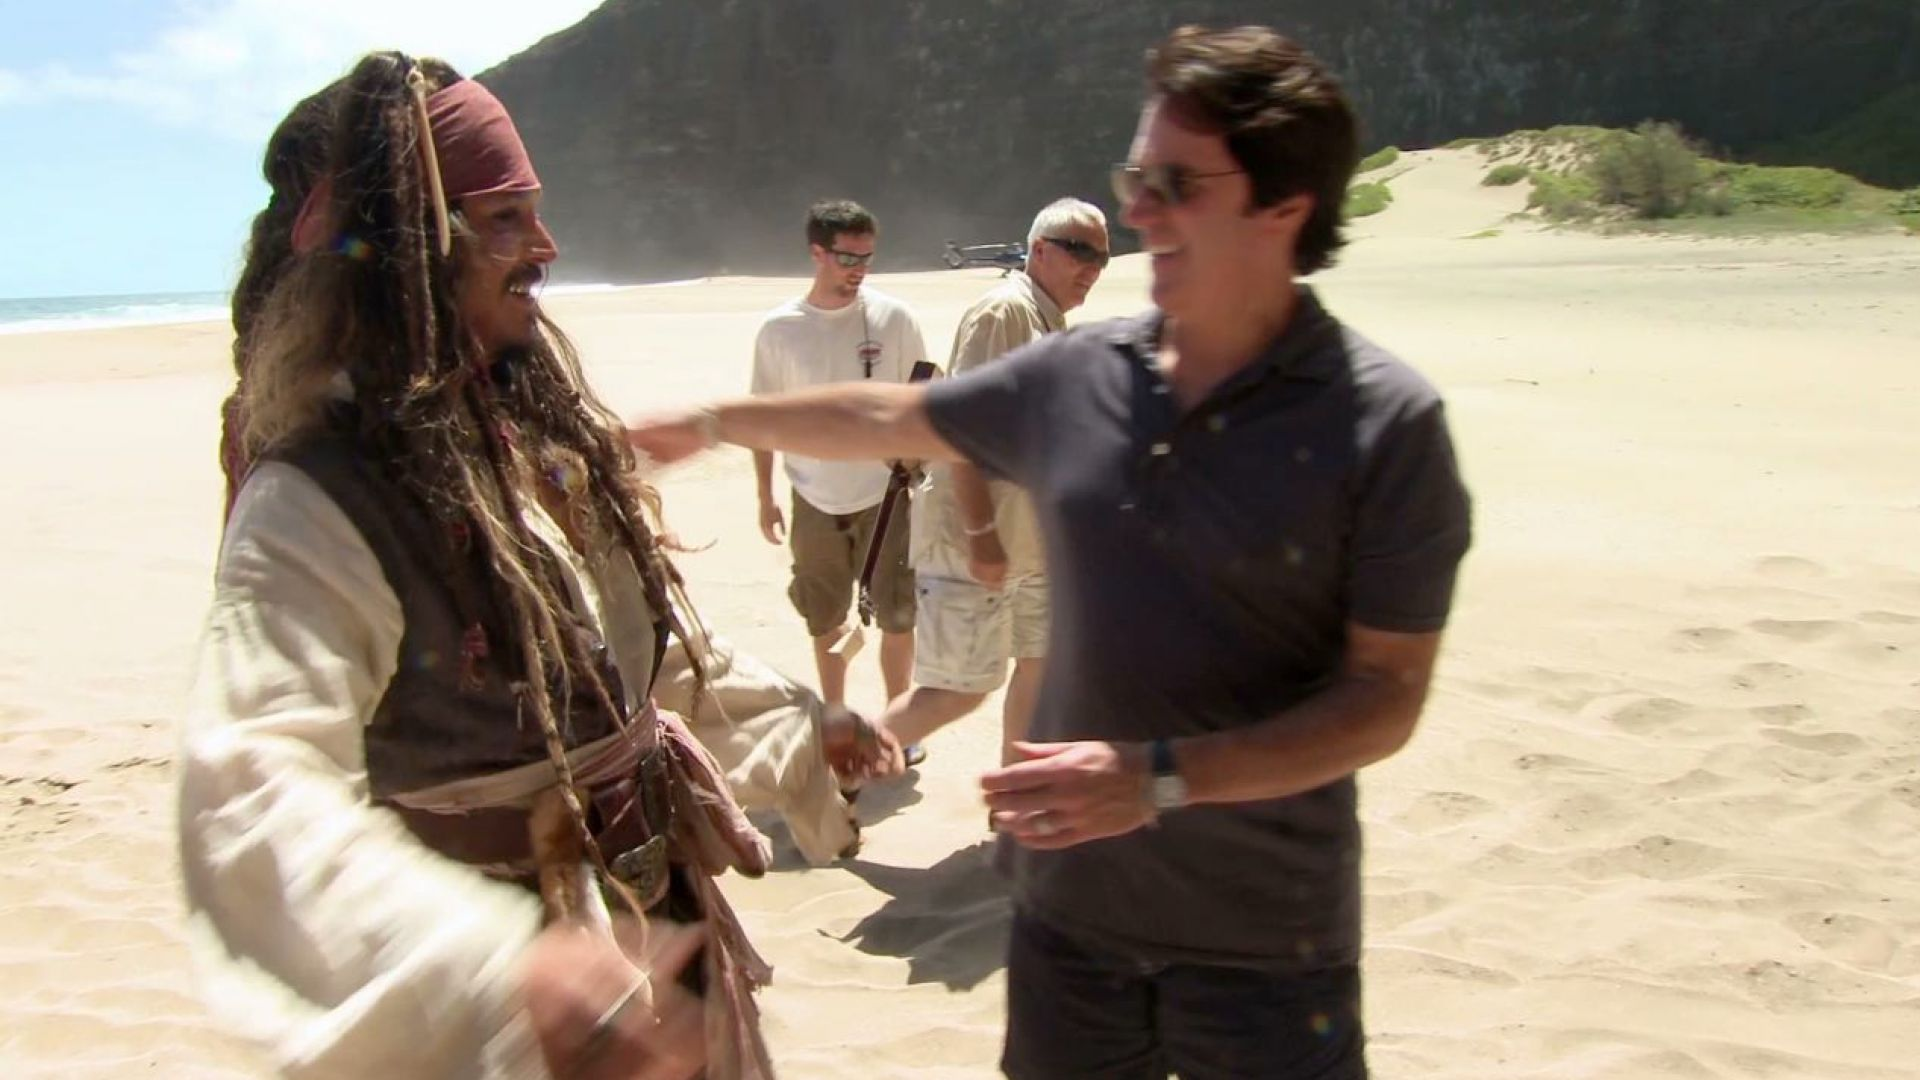 Johnny Depp arrives at Pirates 4 set by Helicopter